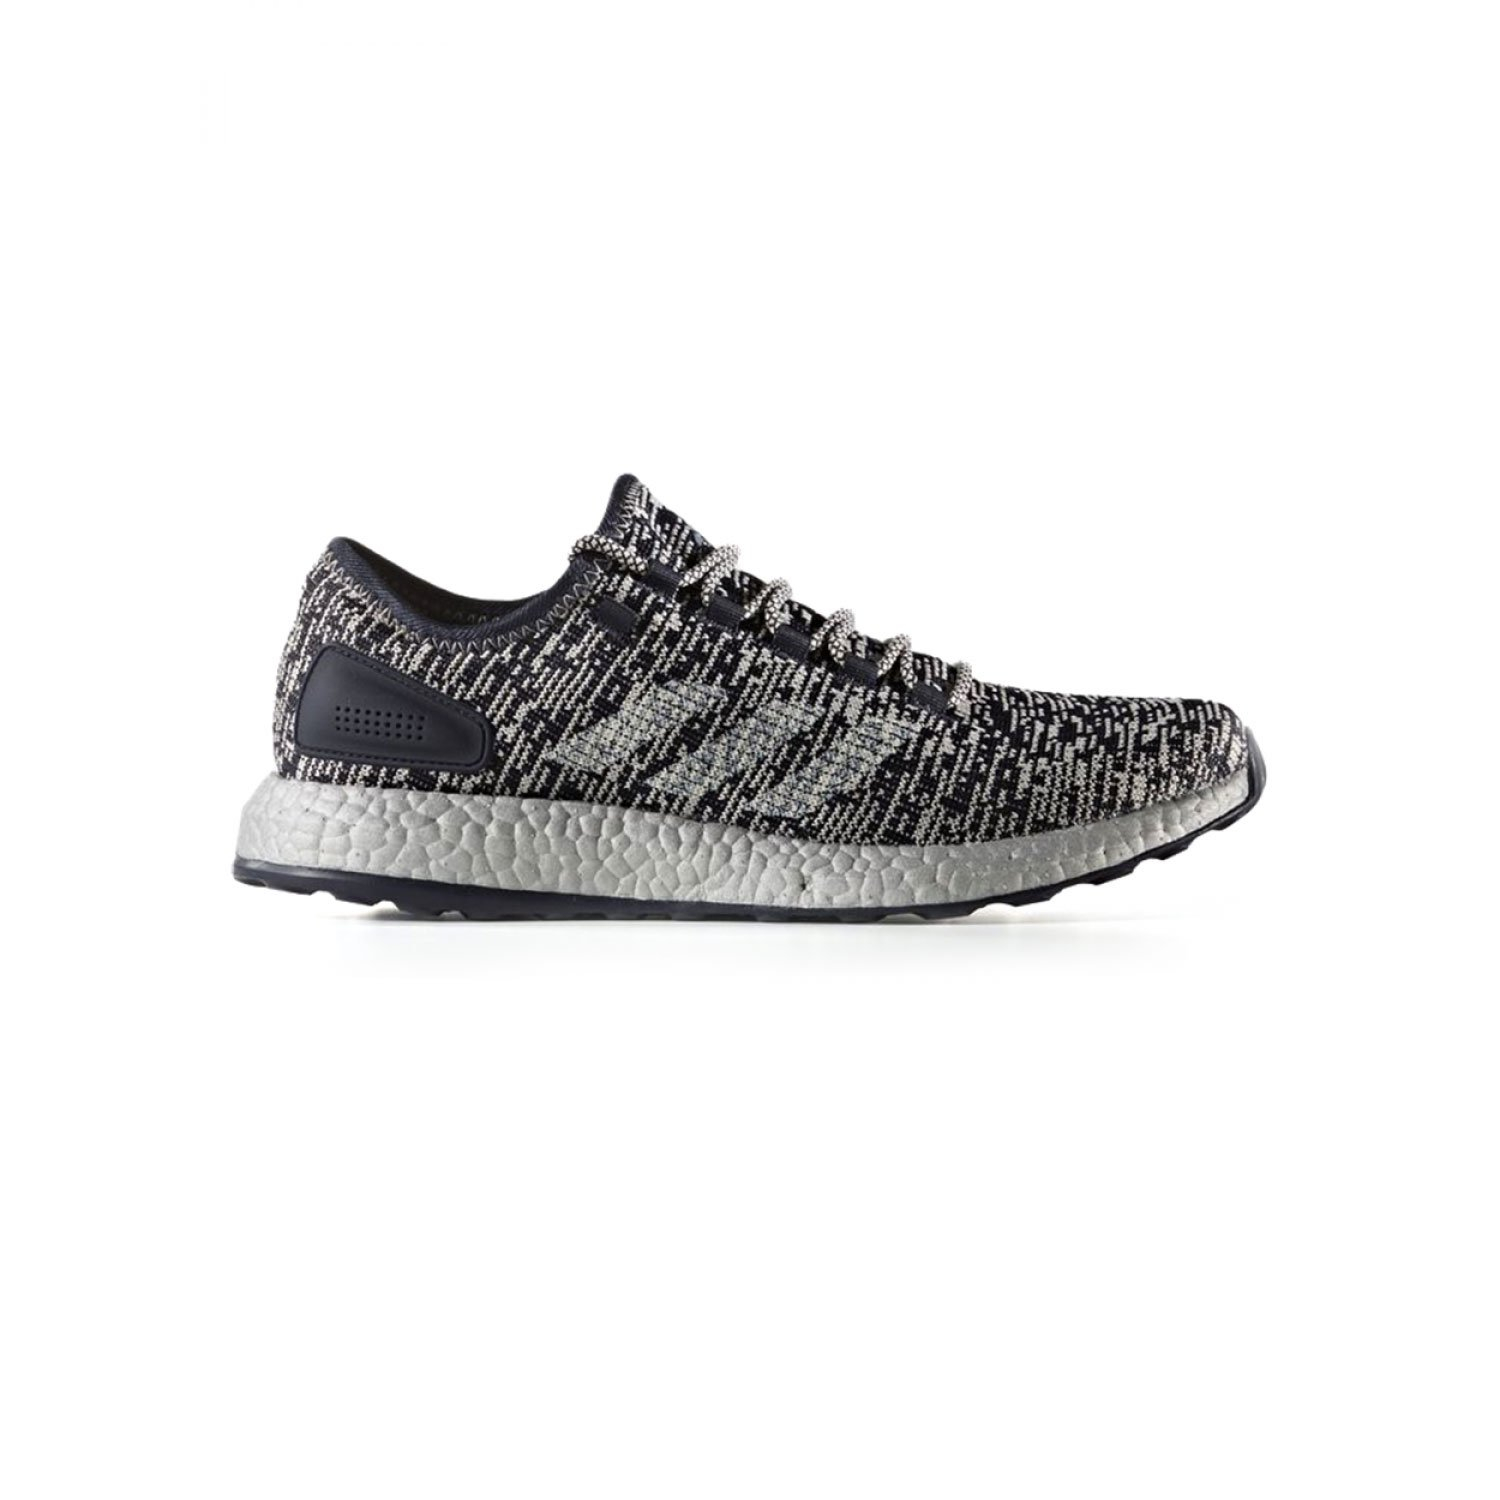 adidas Performance Men's Pureboost Running Shoe B078VDN3GW 7 D(M) US|Legend Ink/Brown/Silver Metallic